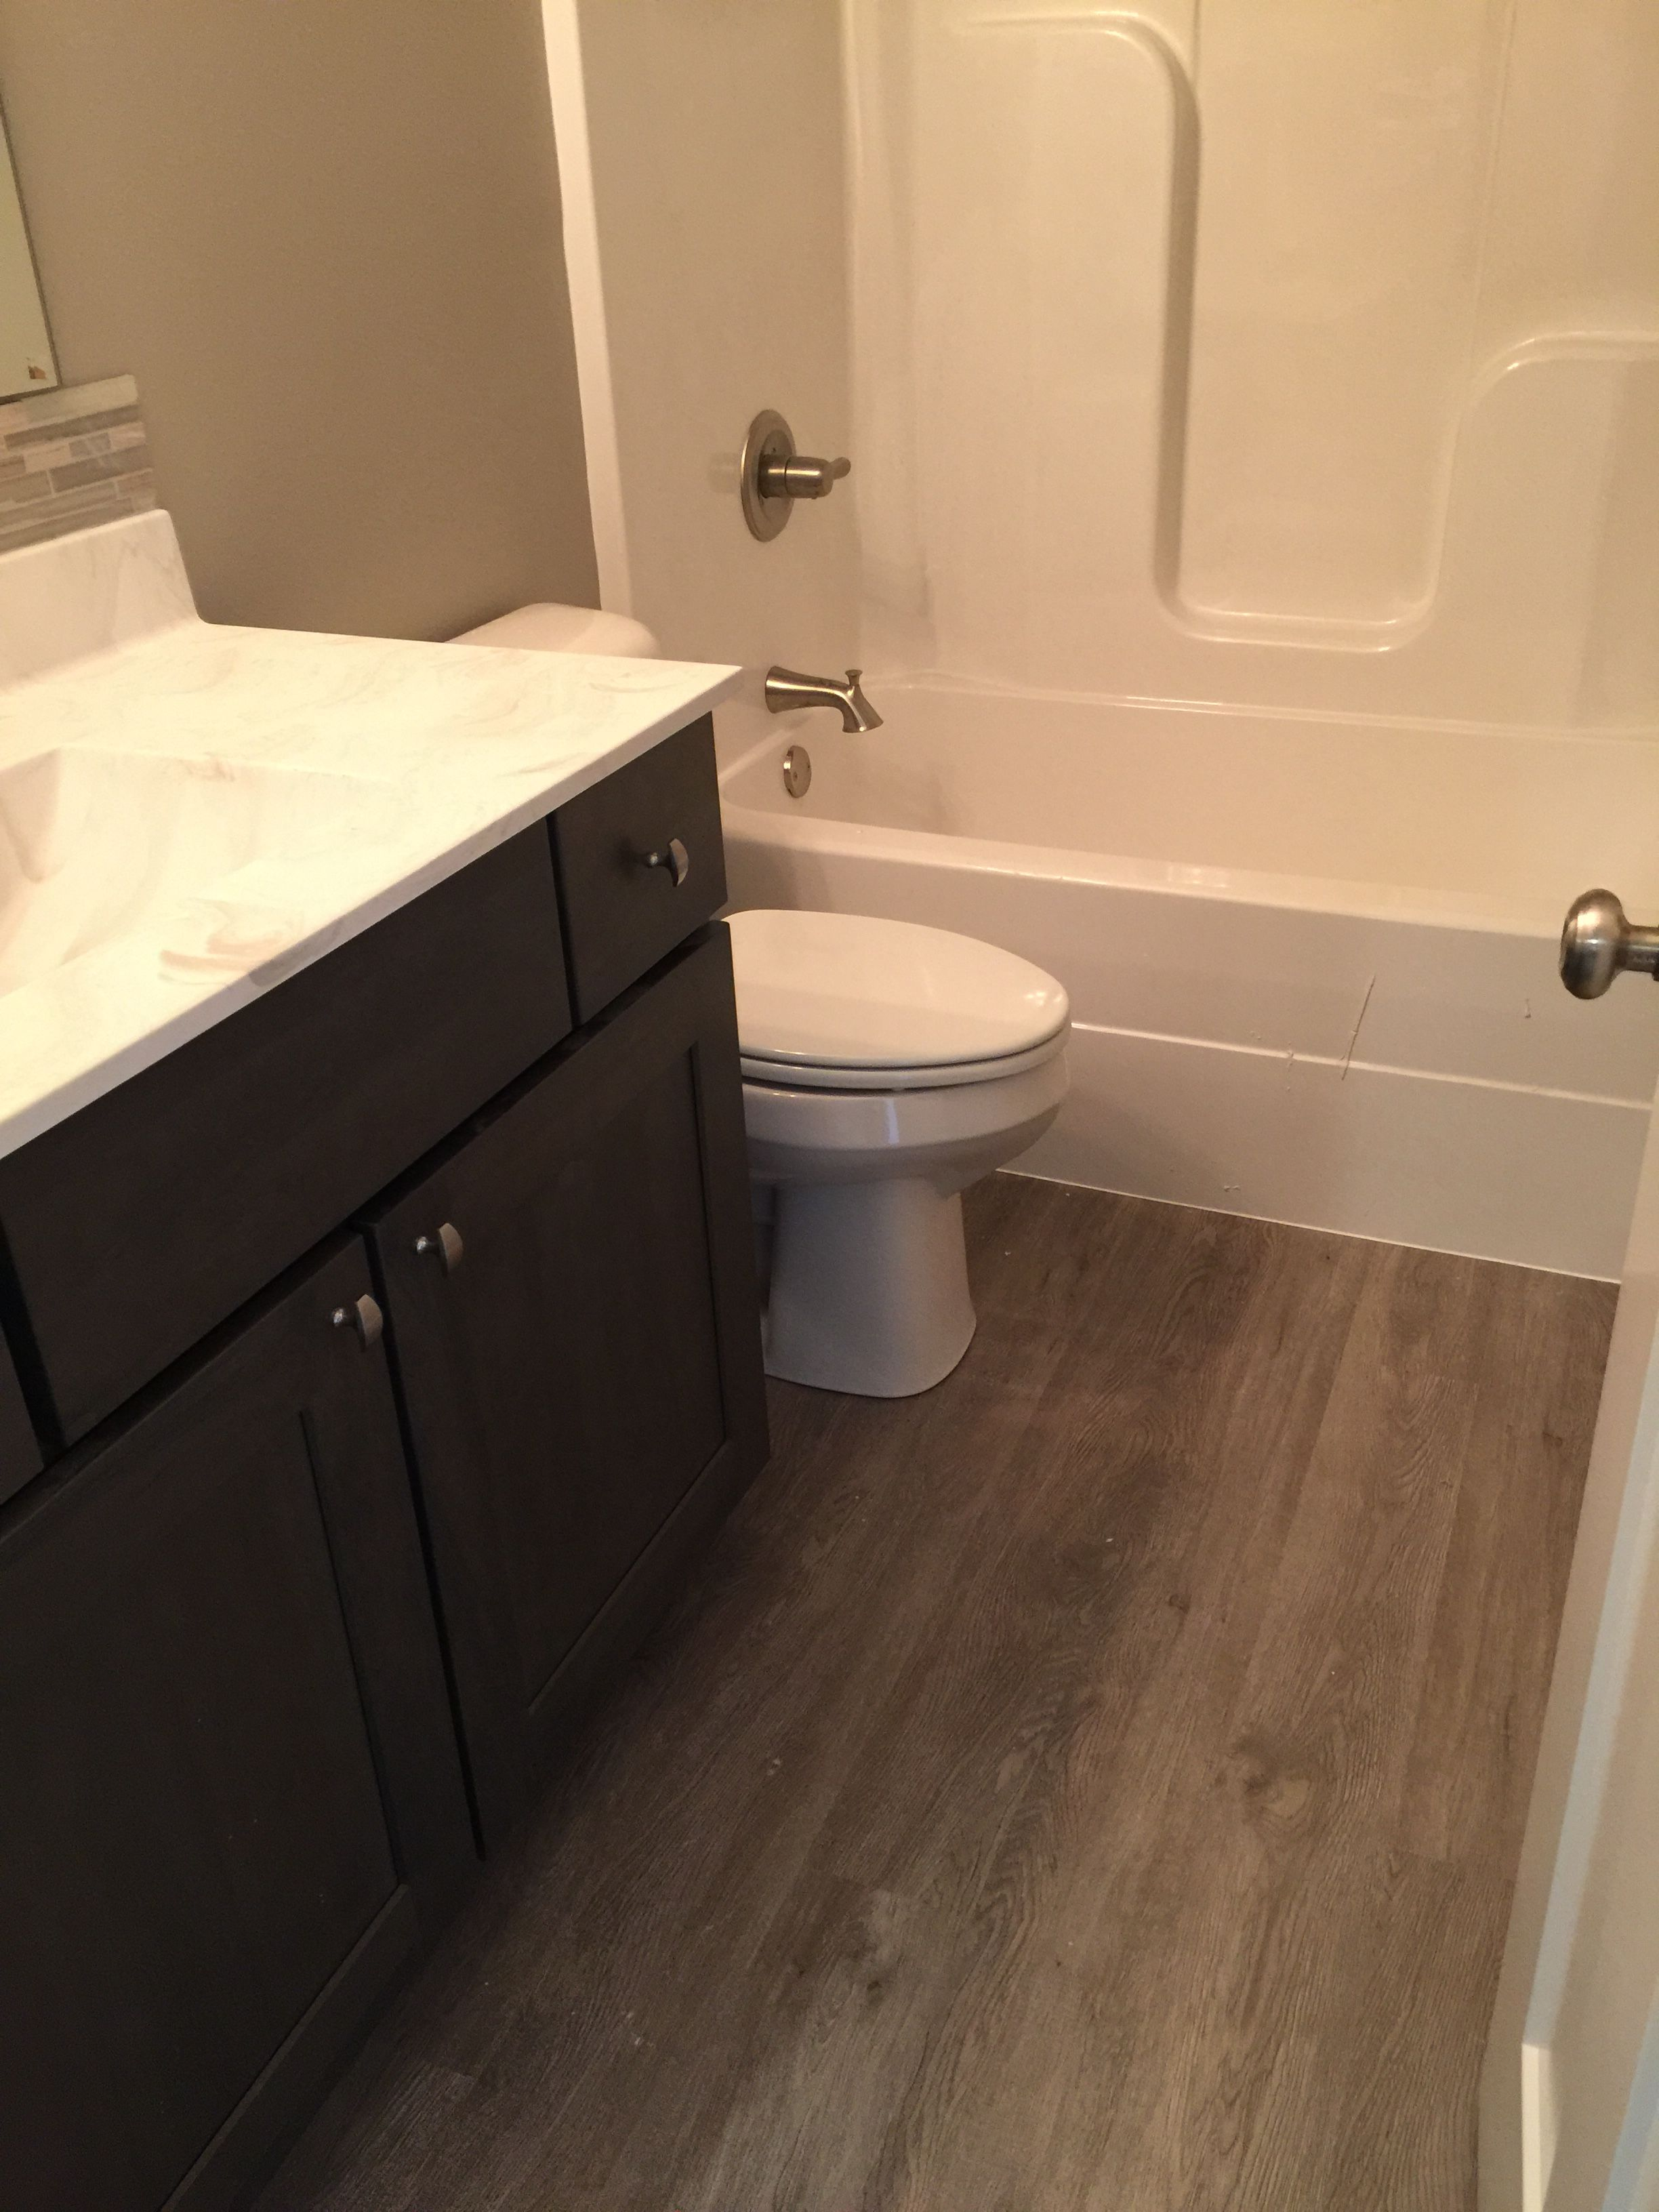 Bathroom With Coretec Flooring In Plymouth Oak Luxury Vinyl Plank Vinyl Plank Flooring Vinyl Plank Flooring Bathroom Luxury Vinyl Plank Flooring